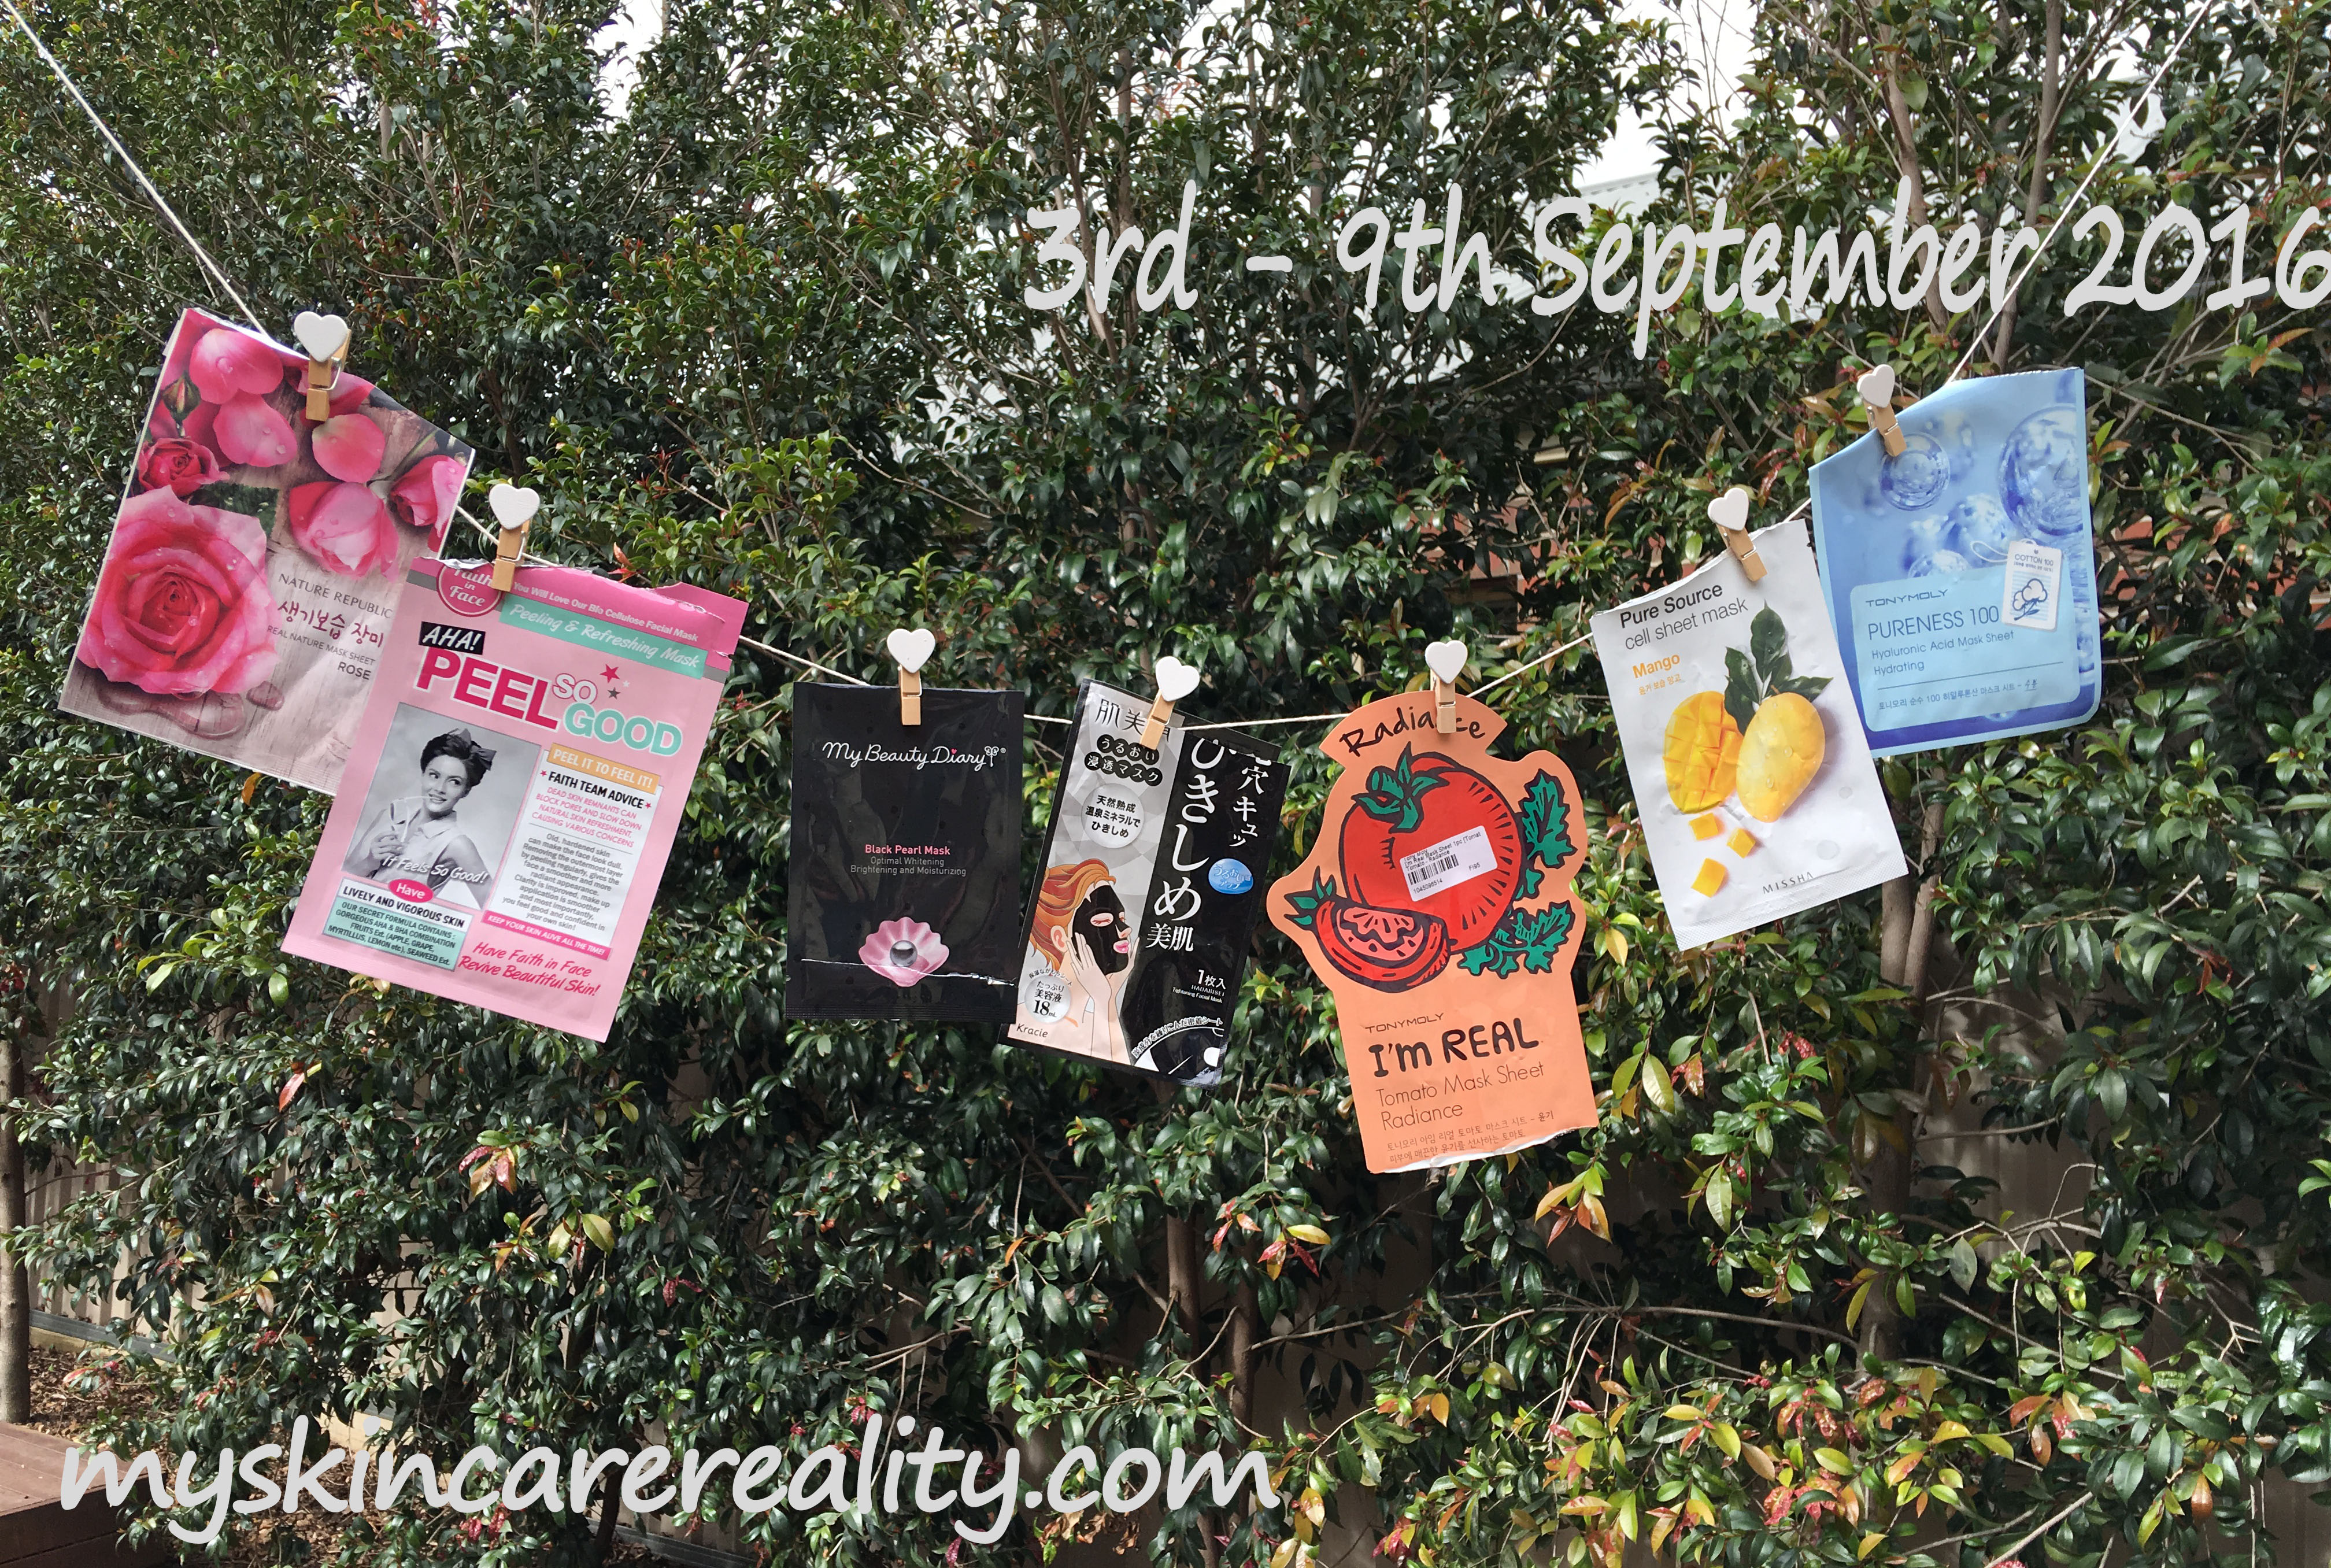 Daily Sheet Masks Review |3rd – 9th September 2016 | My Skincare Reality